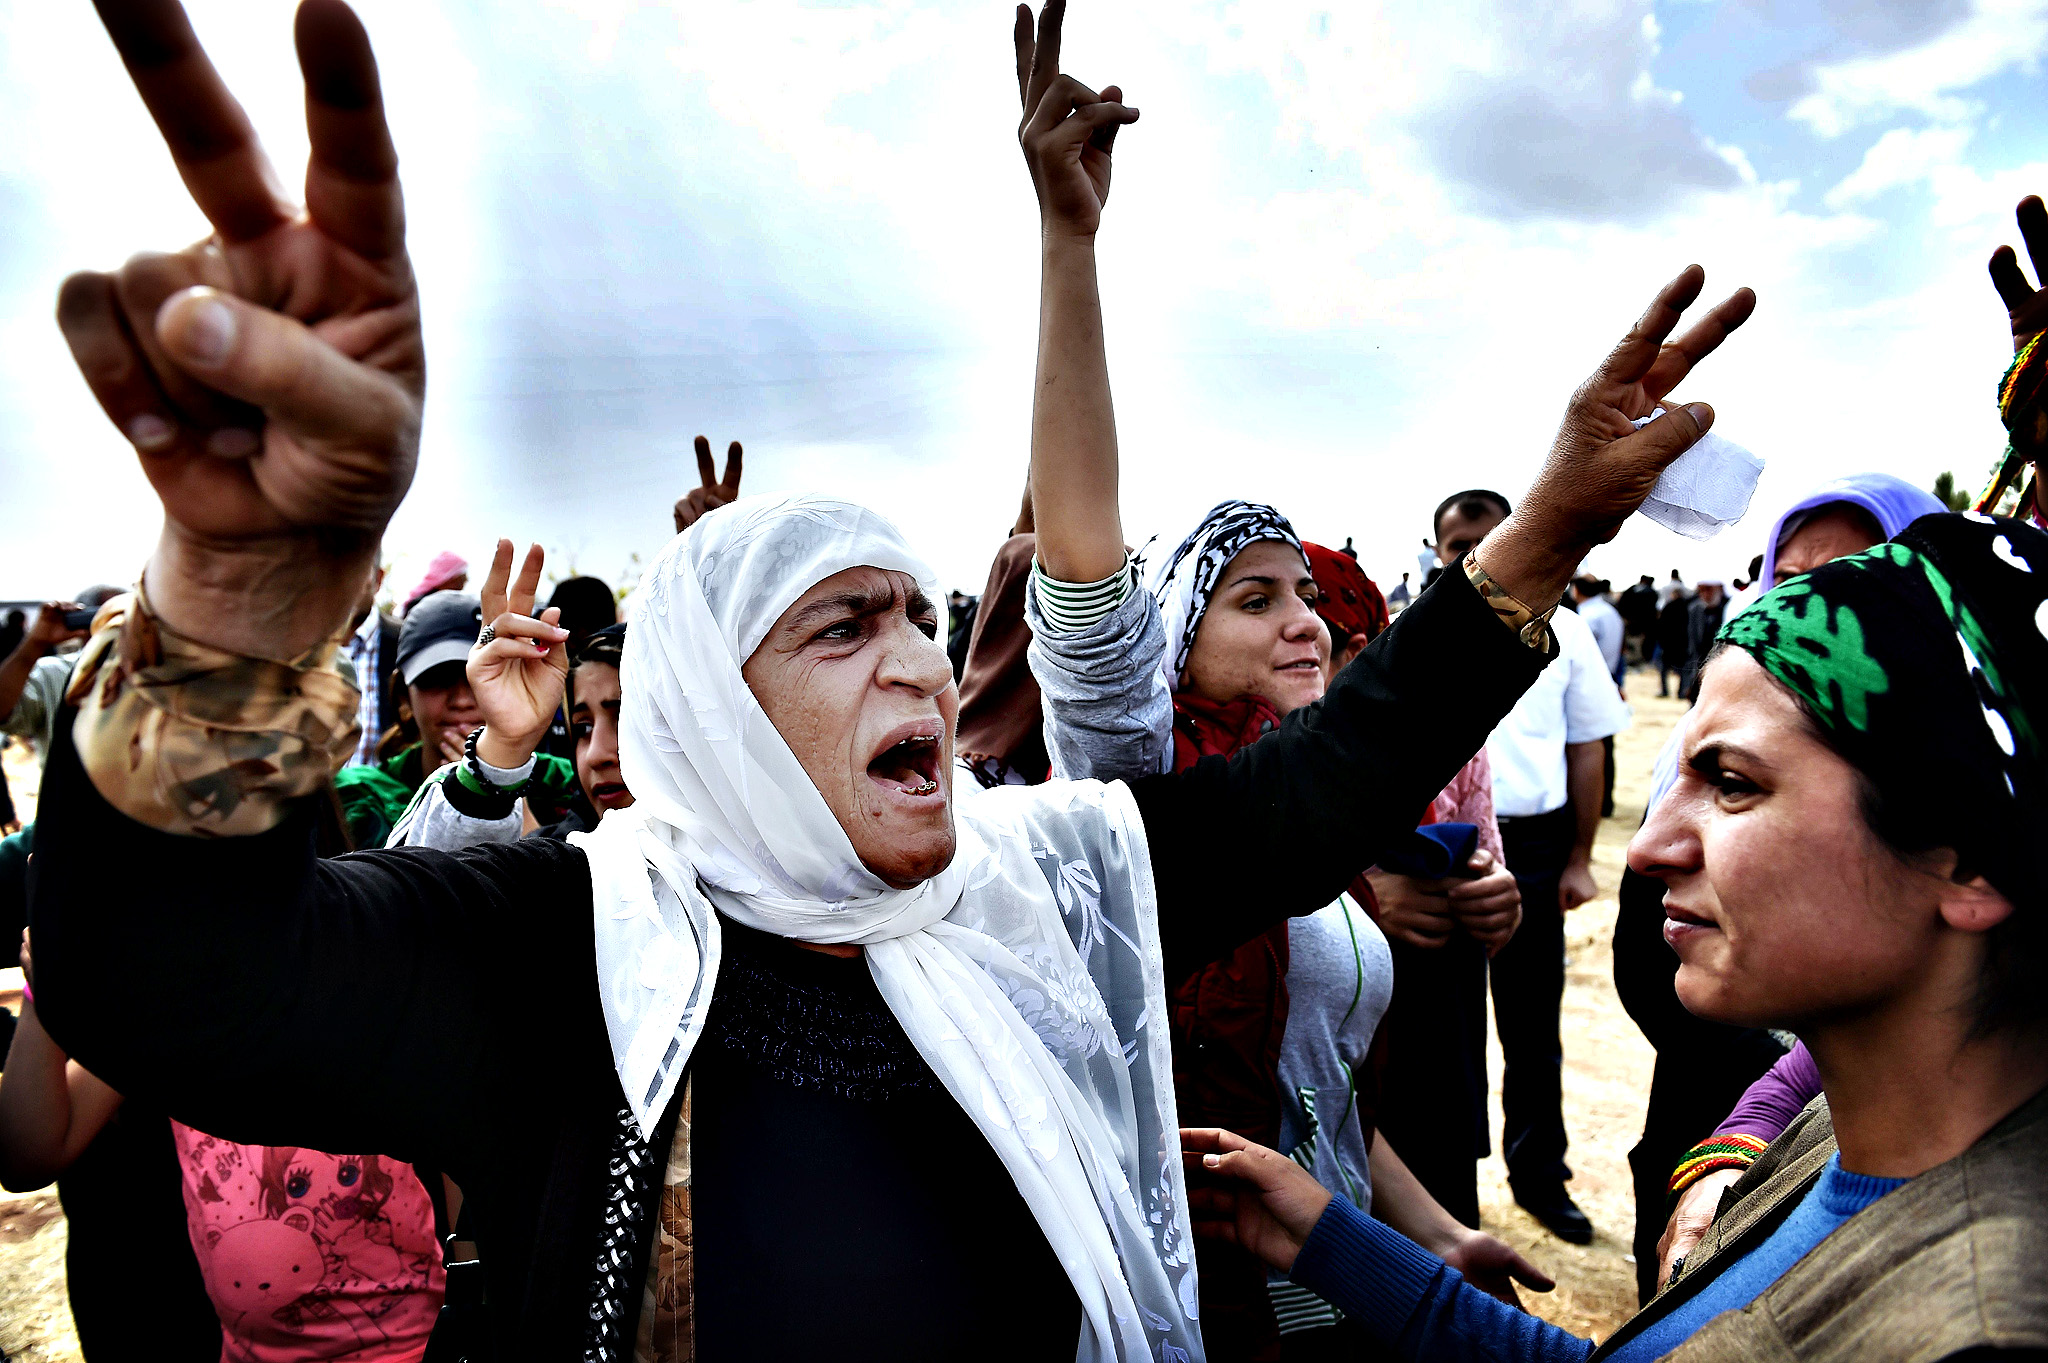 Kurdish women shout slogans during the funeral of a  YPG (People's Protection Units) fighter in the town of Suruc, Sanliurfa province, on October 14, 2014. Attacking Islamic State jihadists met firm Kurdish resistance in the Syrian battleground town of Kobane on Sunday, as neighbouring Turkey heeded pressure to intervene and handed the US access to its air bases.